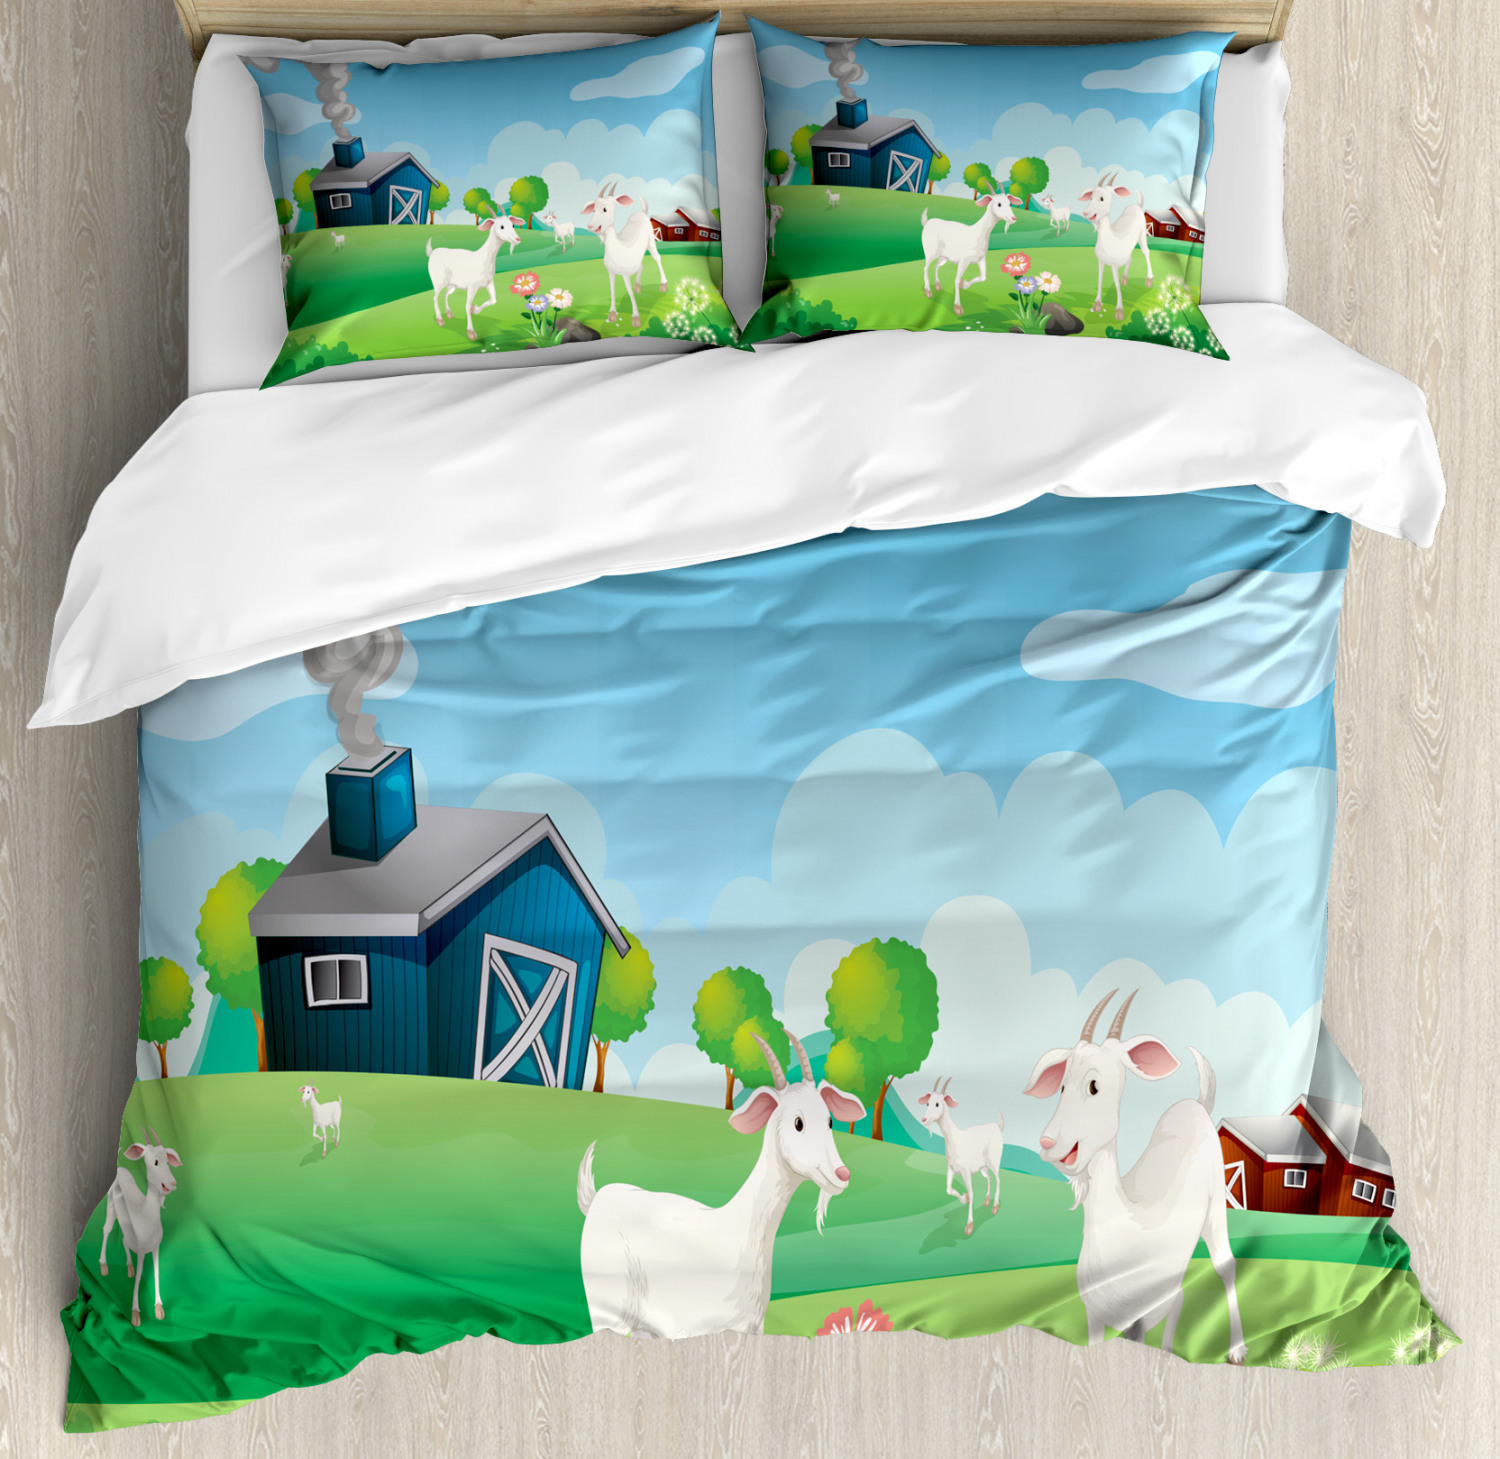 Farmhouse Duvet Cover Set King Size Pleasant Farm Life Illustration With Colorful Houses Green Meadows Happy Goats Decorative 3 Piece Bedding Set With 2 Pillow Shams Multicolor By Ambesonne Walmart Com Walmart Com